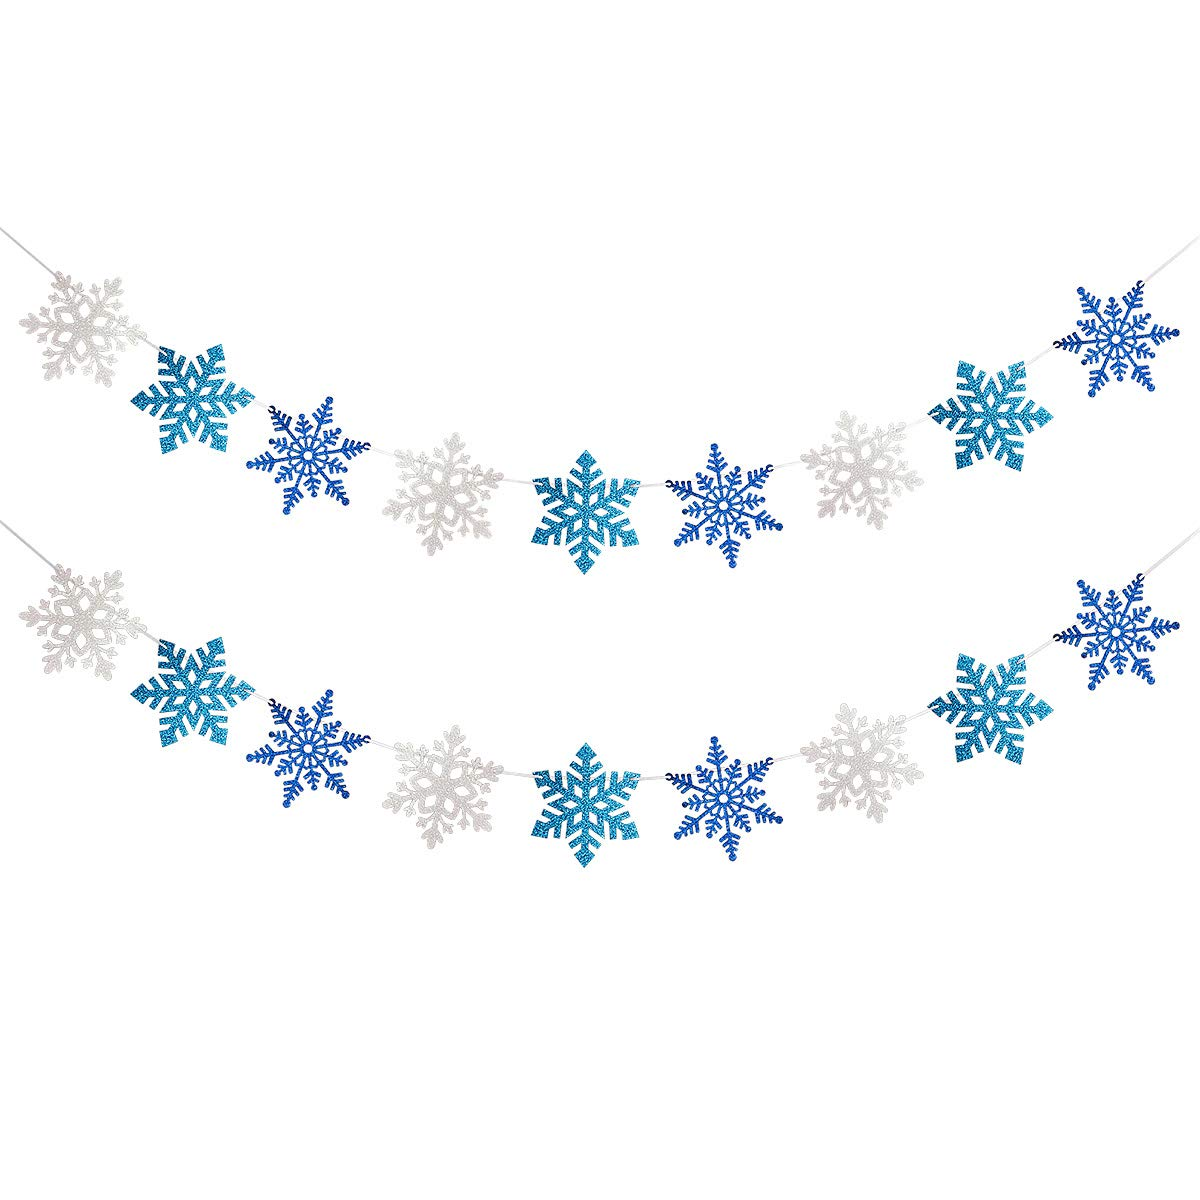 2 Pack White & Blue & Light BLue Glittery Snowflake Banner- Christmas Holiday Party Decorations,Winter Wonderland Decor,Santa Festive Party Decor,Winter Mantle Home Decor